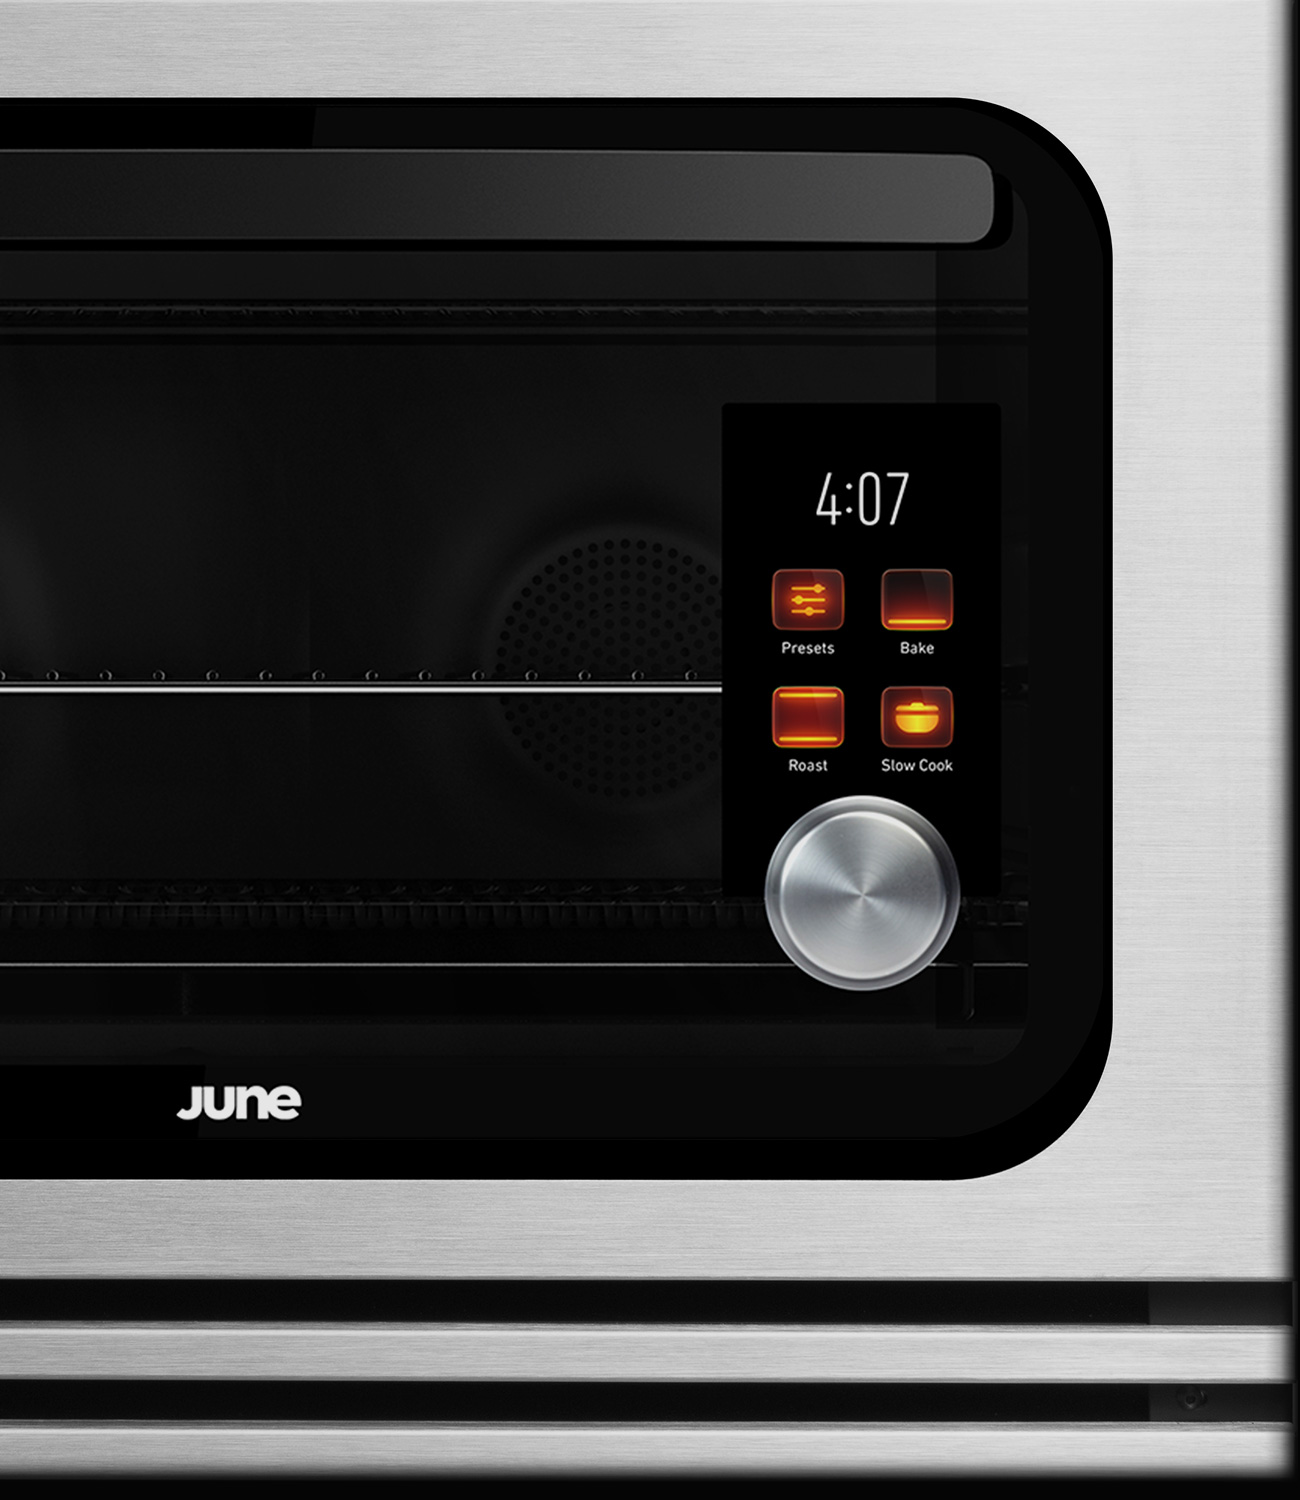 Best Temperature To Keep Food Warm In Oven